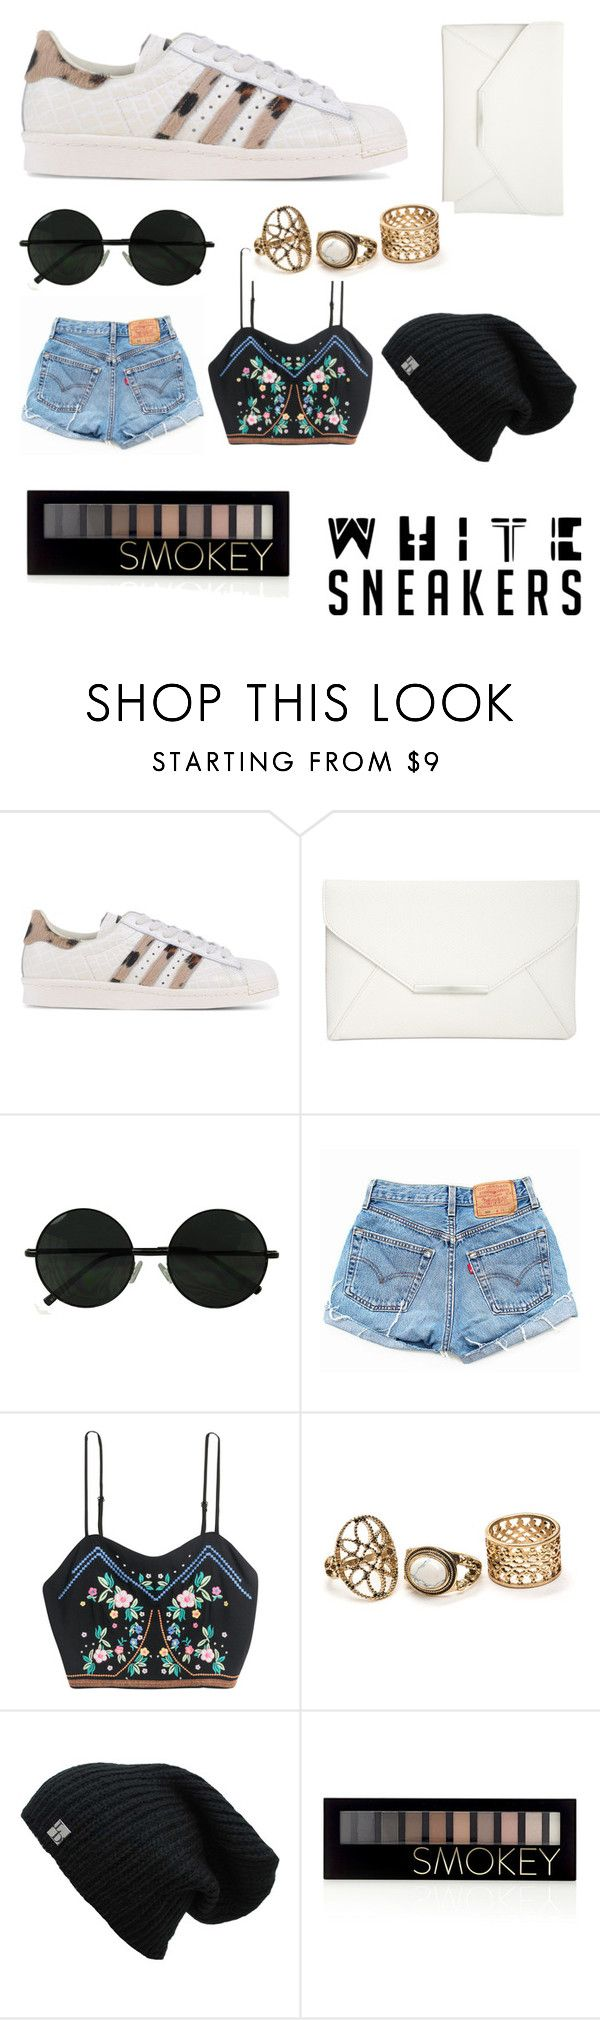 """""""white sneakers"""" by wakeupandliive ❤ liked on Polyvore featuring adidas Originals, Style & Co., Levi's and Forever 21"""